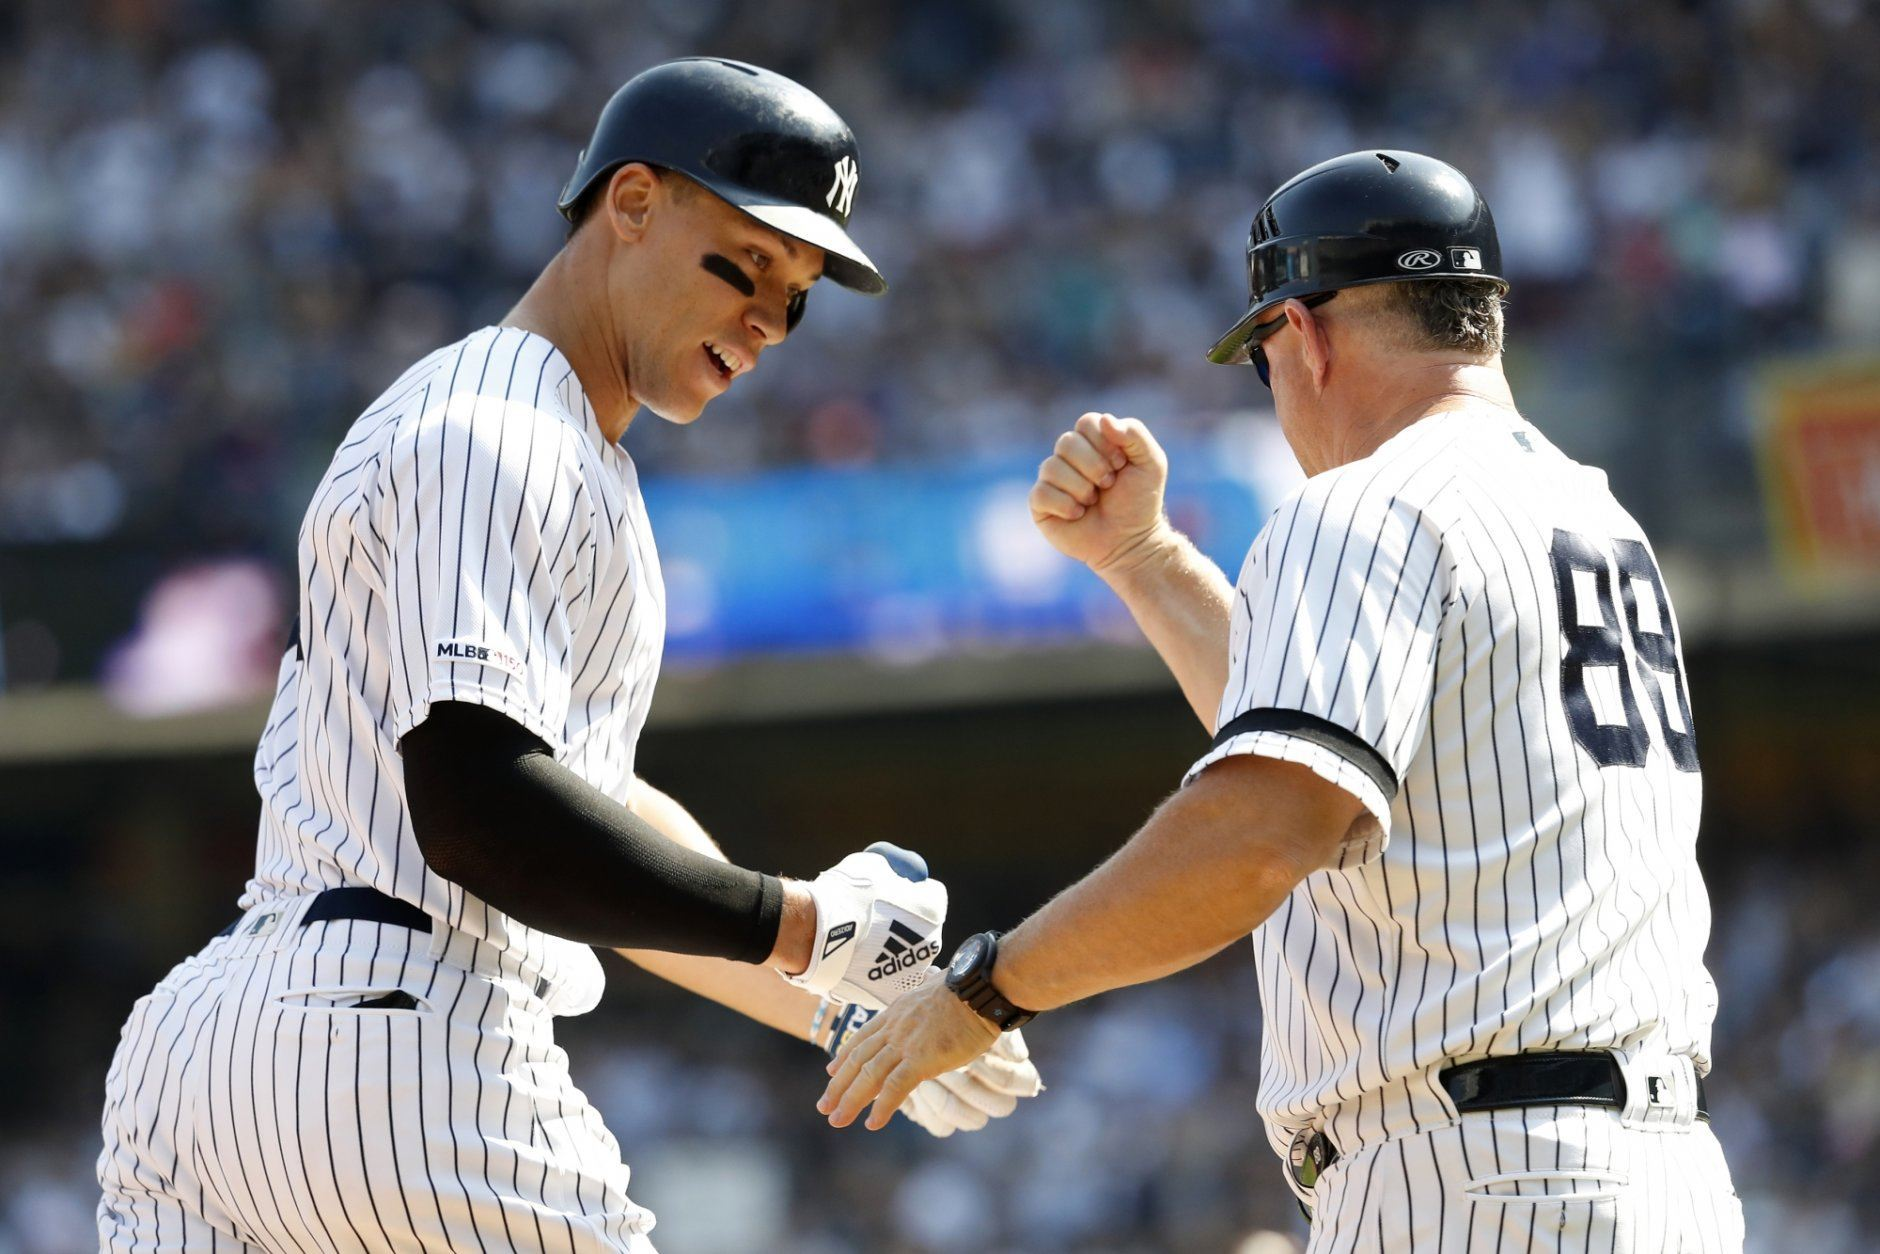 <p><strong>Who They Are</strong></p> <p>New York Yankees (103-59), AL East Champions</p> <p><strong>Why They're Fun</strong></p> <p>They're not (just kidding). If you find yourself struggling to find a reason to find the Yankees compelling, consider they have been so banged up this year that the top three home run hitters on a team with Aaron Judge and Giancarlo Stanton were 22-year-old middle infielder Gleyber Torres, catcher Gary Sanchez, and 35-year-old outfielder Brett Gardner.</p> <p><strong>A Guy to Know</strong></p> <p>Even though he won a batting title in Colorado, D.J. LeMahieu's been no more than an average big league hitter (career OPS+ of 92 through 2018) before breaking out in the Bronx. He's brought some stability to the lineup as one of just a dozen big leaguers this year with 100 runs and 100 RBI, and the highest batting average (.327) of that group, while playing all over the infield, posting a six-WAR campaign.</p> <p><strong>Potential Difference-maker</strong></p> <p>Giancarlo Stanton. The 2017 NL MVP spent two long stretches on the injured list this year and only made it back for nine September games, in which he slashed .286/.382/.571 with a couple home runs. If the Yankees are able to inject a healthy Stanton back into the lineup, that might just be what they need to help cover for their biggest deficiency.</p> <p><strong>Potential Downfall</strong></p> <p>Starting pitching. The Yanks have a single starter with an ERA under 4.00 (James Paxton, 3.82) and will be without 18-game winner Domingo German, who is serving a suspension for an alleged domestic violence incident. That leaves Masahiro Tanaka (5.26 ERA since All-Star break), J.A. Happ (34 home runs allowed, fifth in AL), and recently-returned Luis Severino as options to try to keep them in the game before the bullpen can take over.</p>